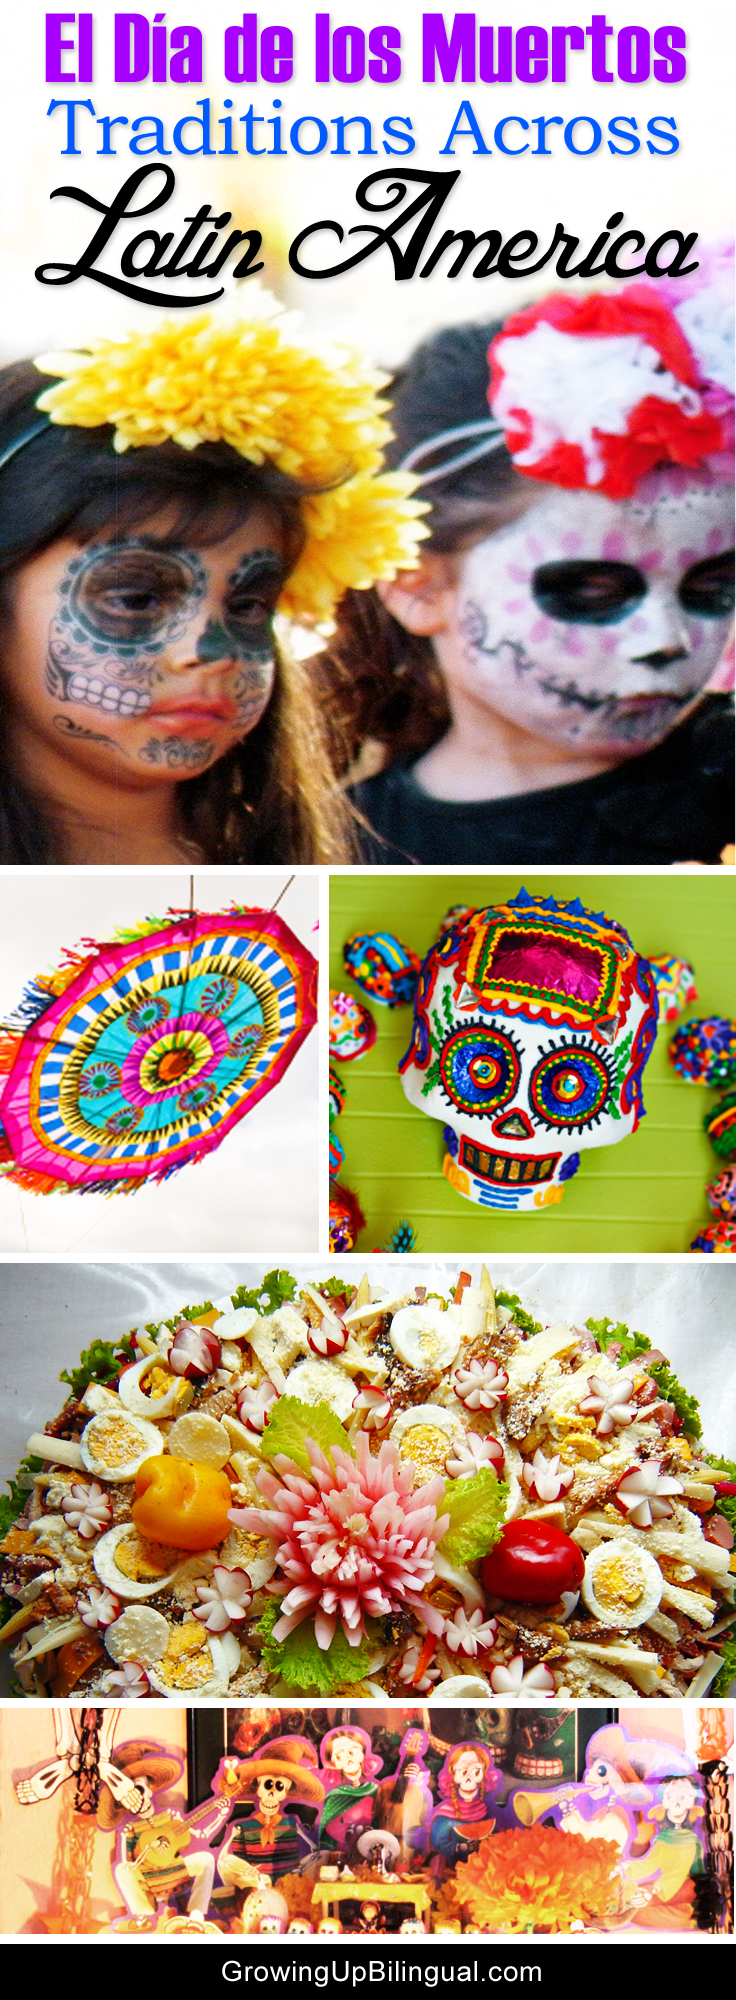 Dia de los Muertos traditions in Latin America collage